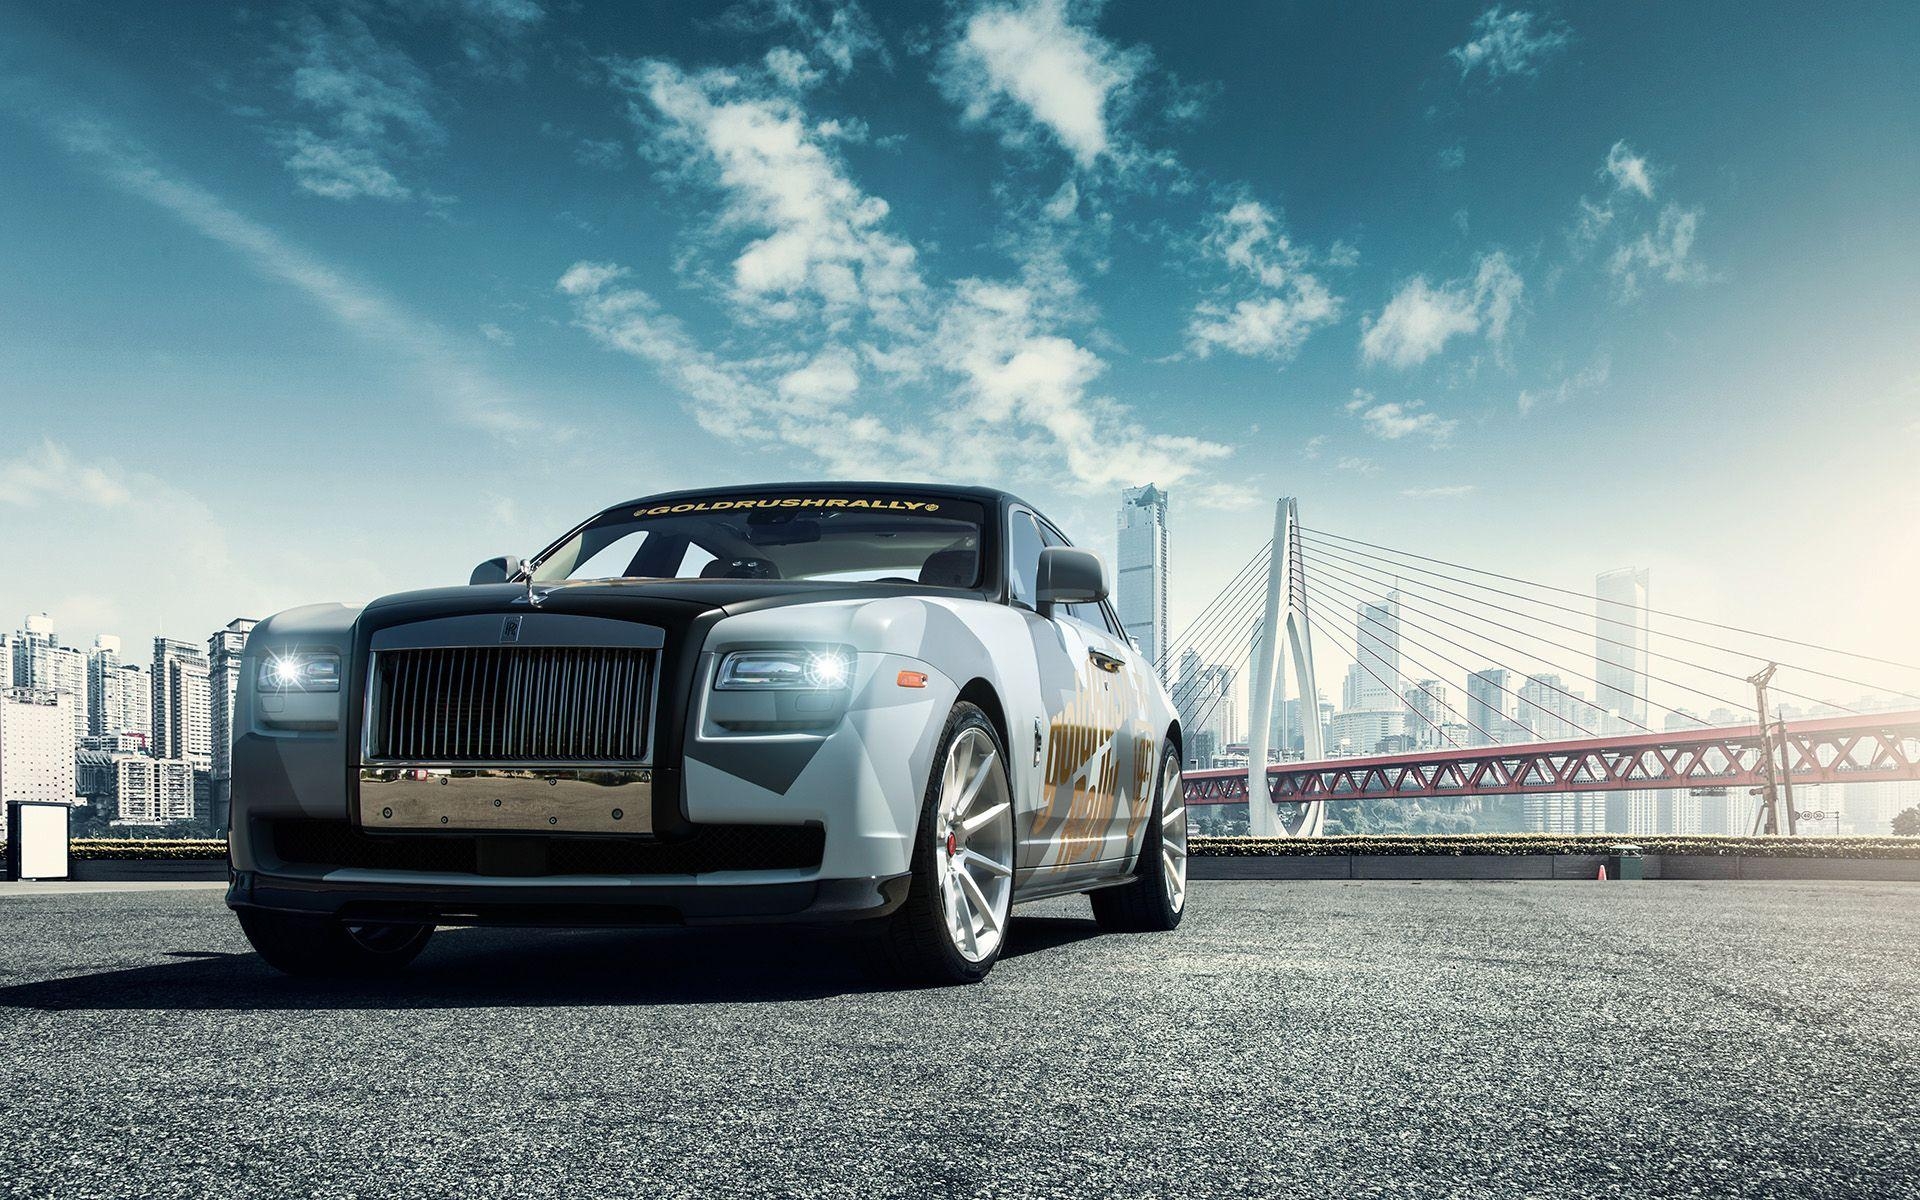 2016 Vorsteiner Rolls Royce Ghost Aero Wallpaper | HD Car Wallpapers